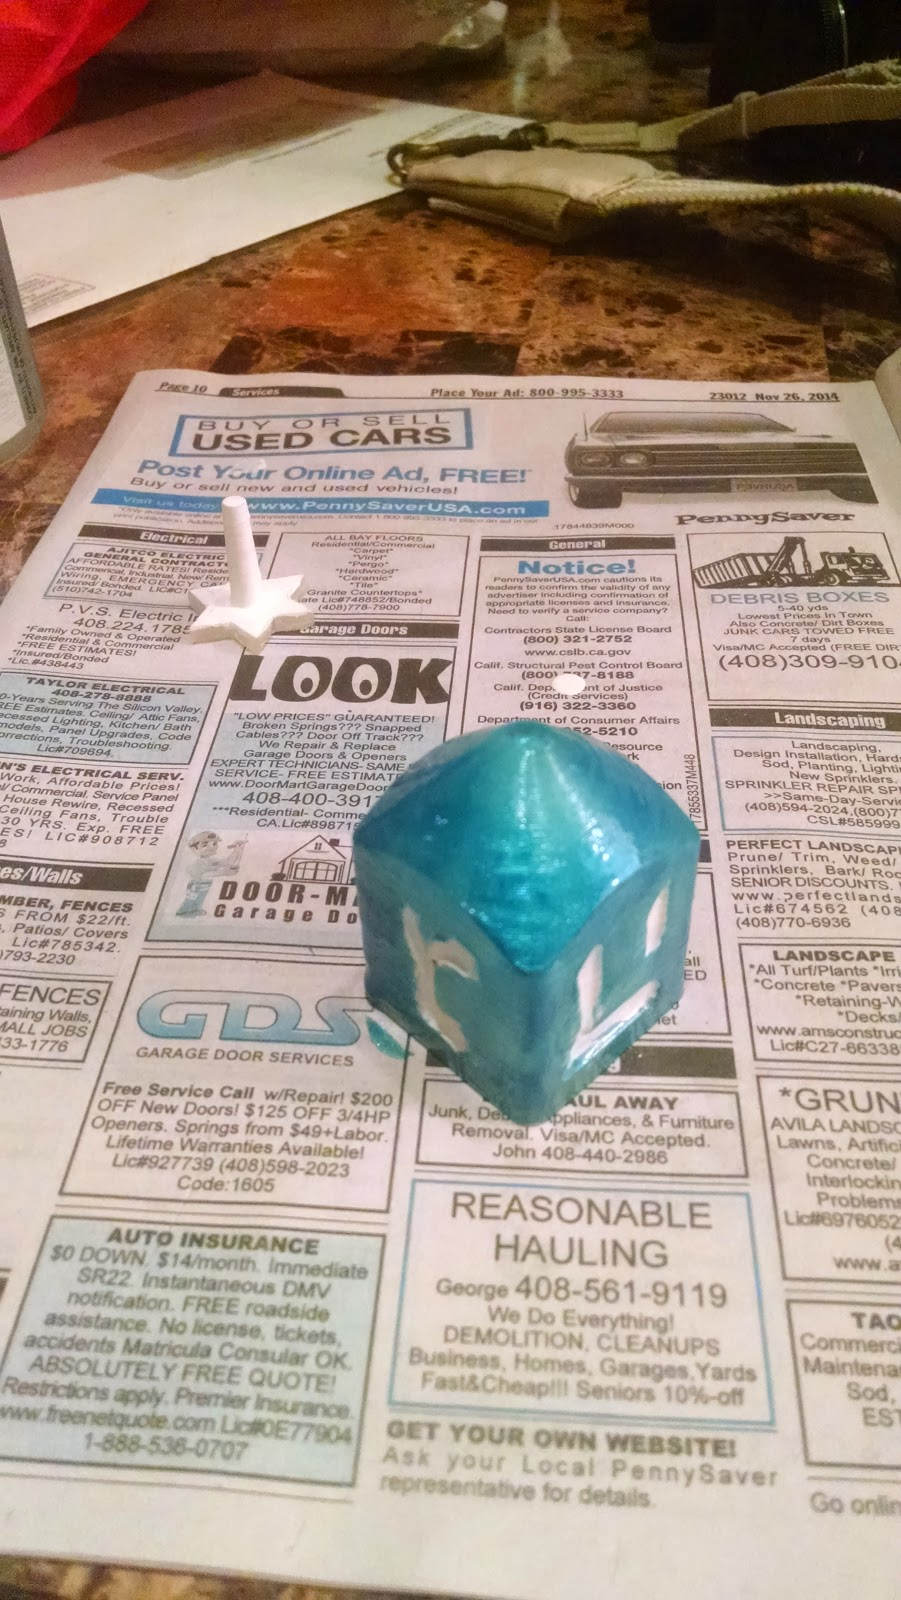 dreidel is lying on newsprint with the tip pointing up and the handle separate. The surface is a shiny translucent blue.